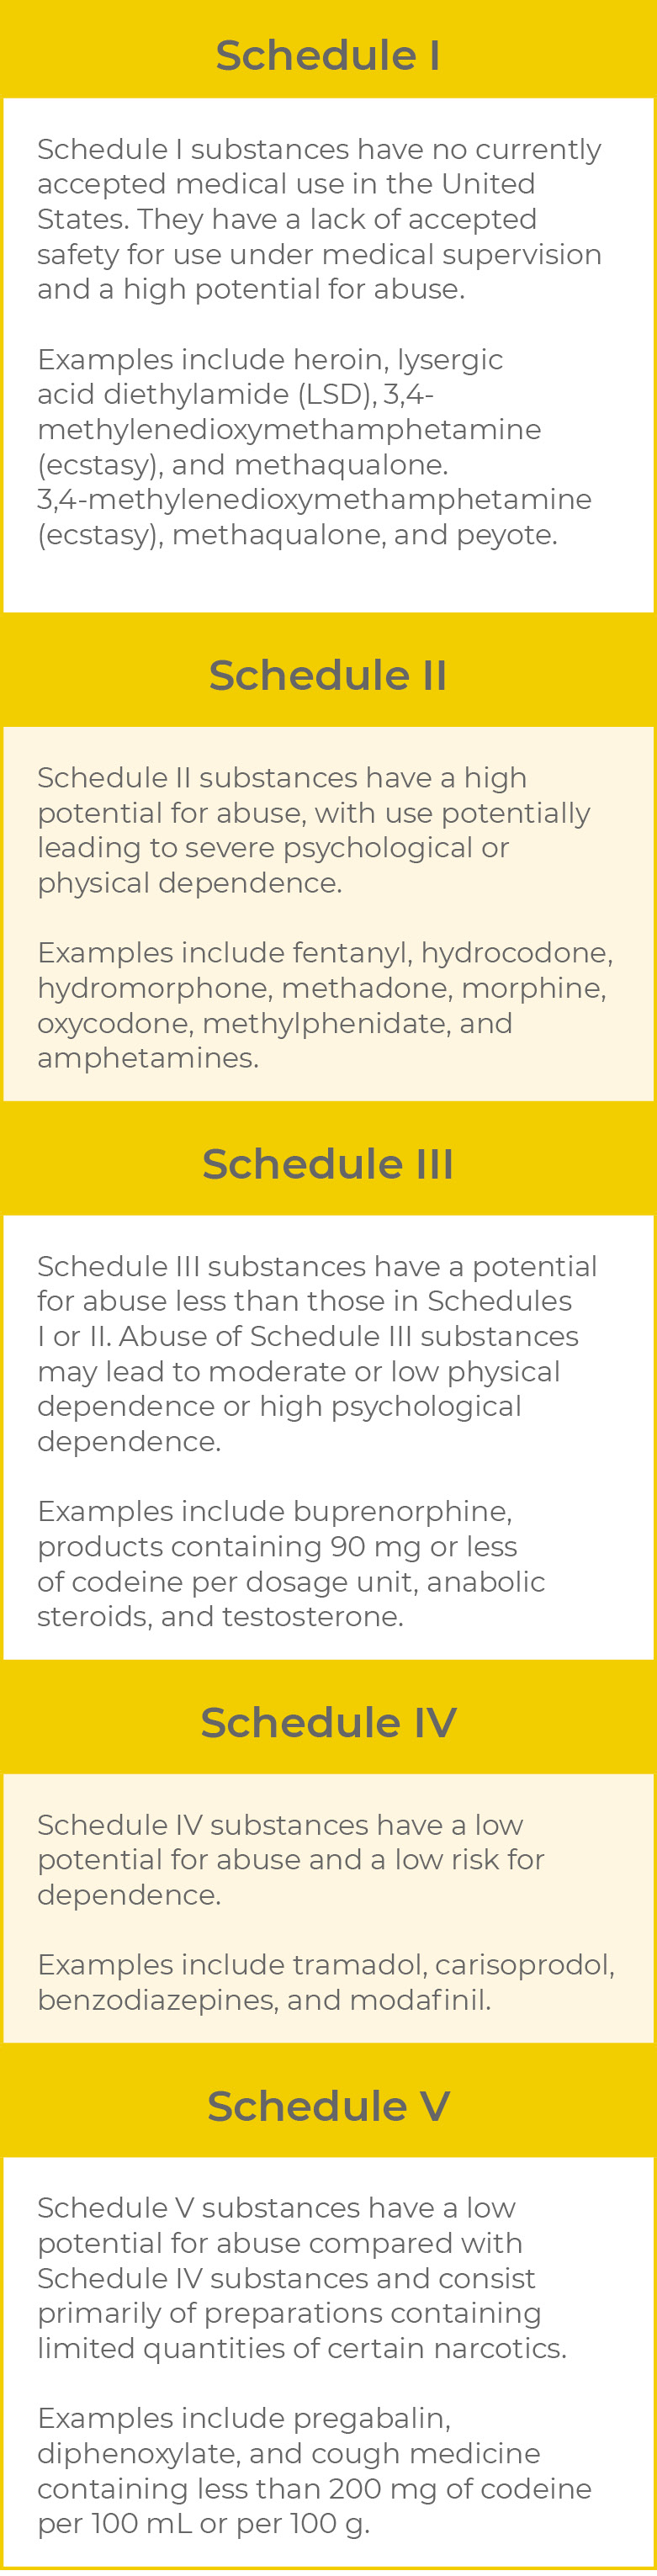 Drug scheduling classification by DEA